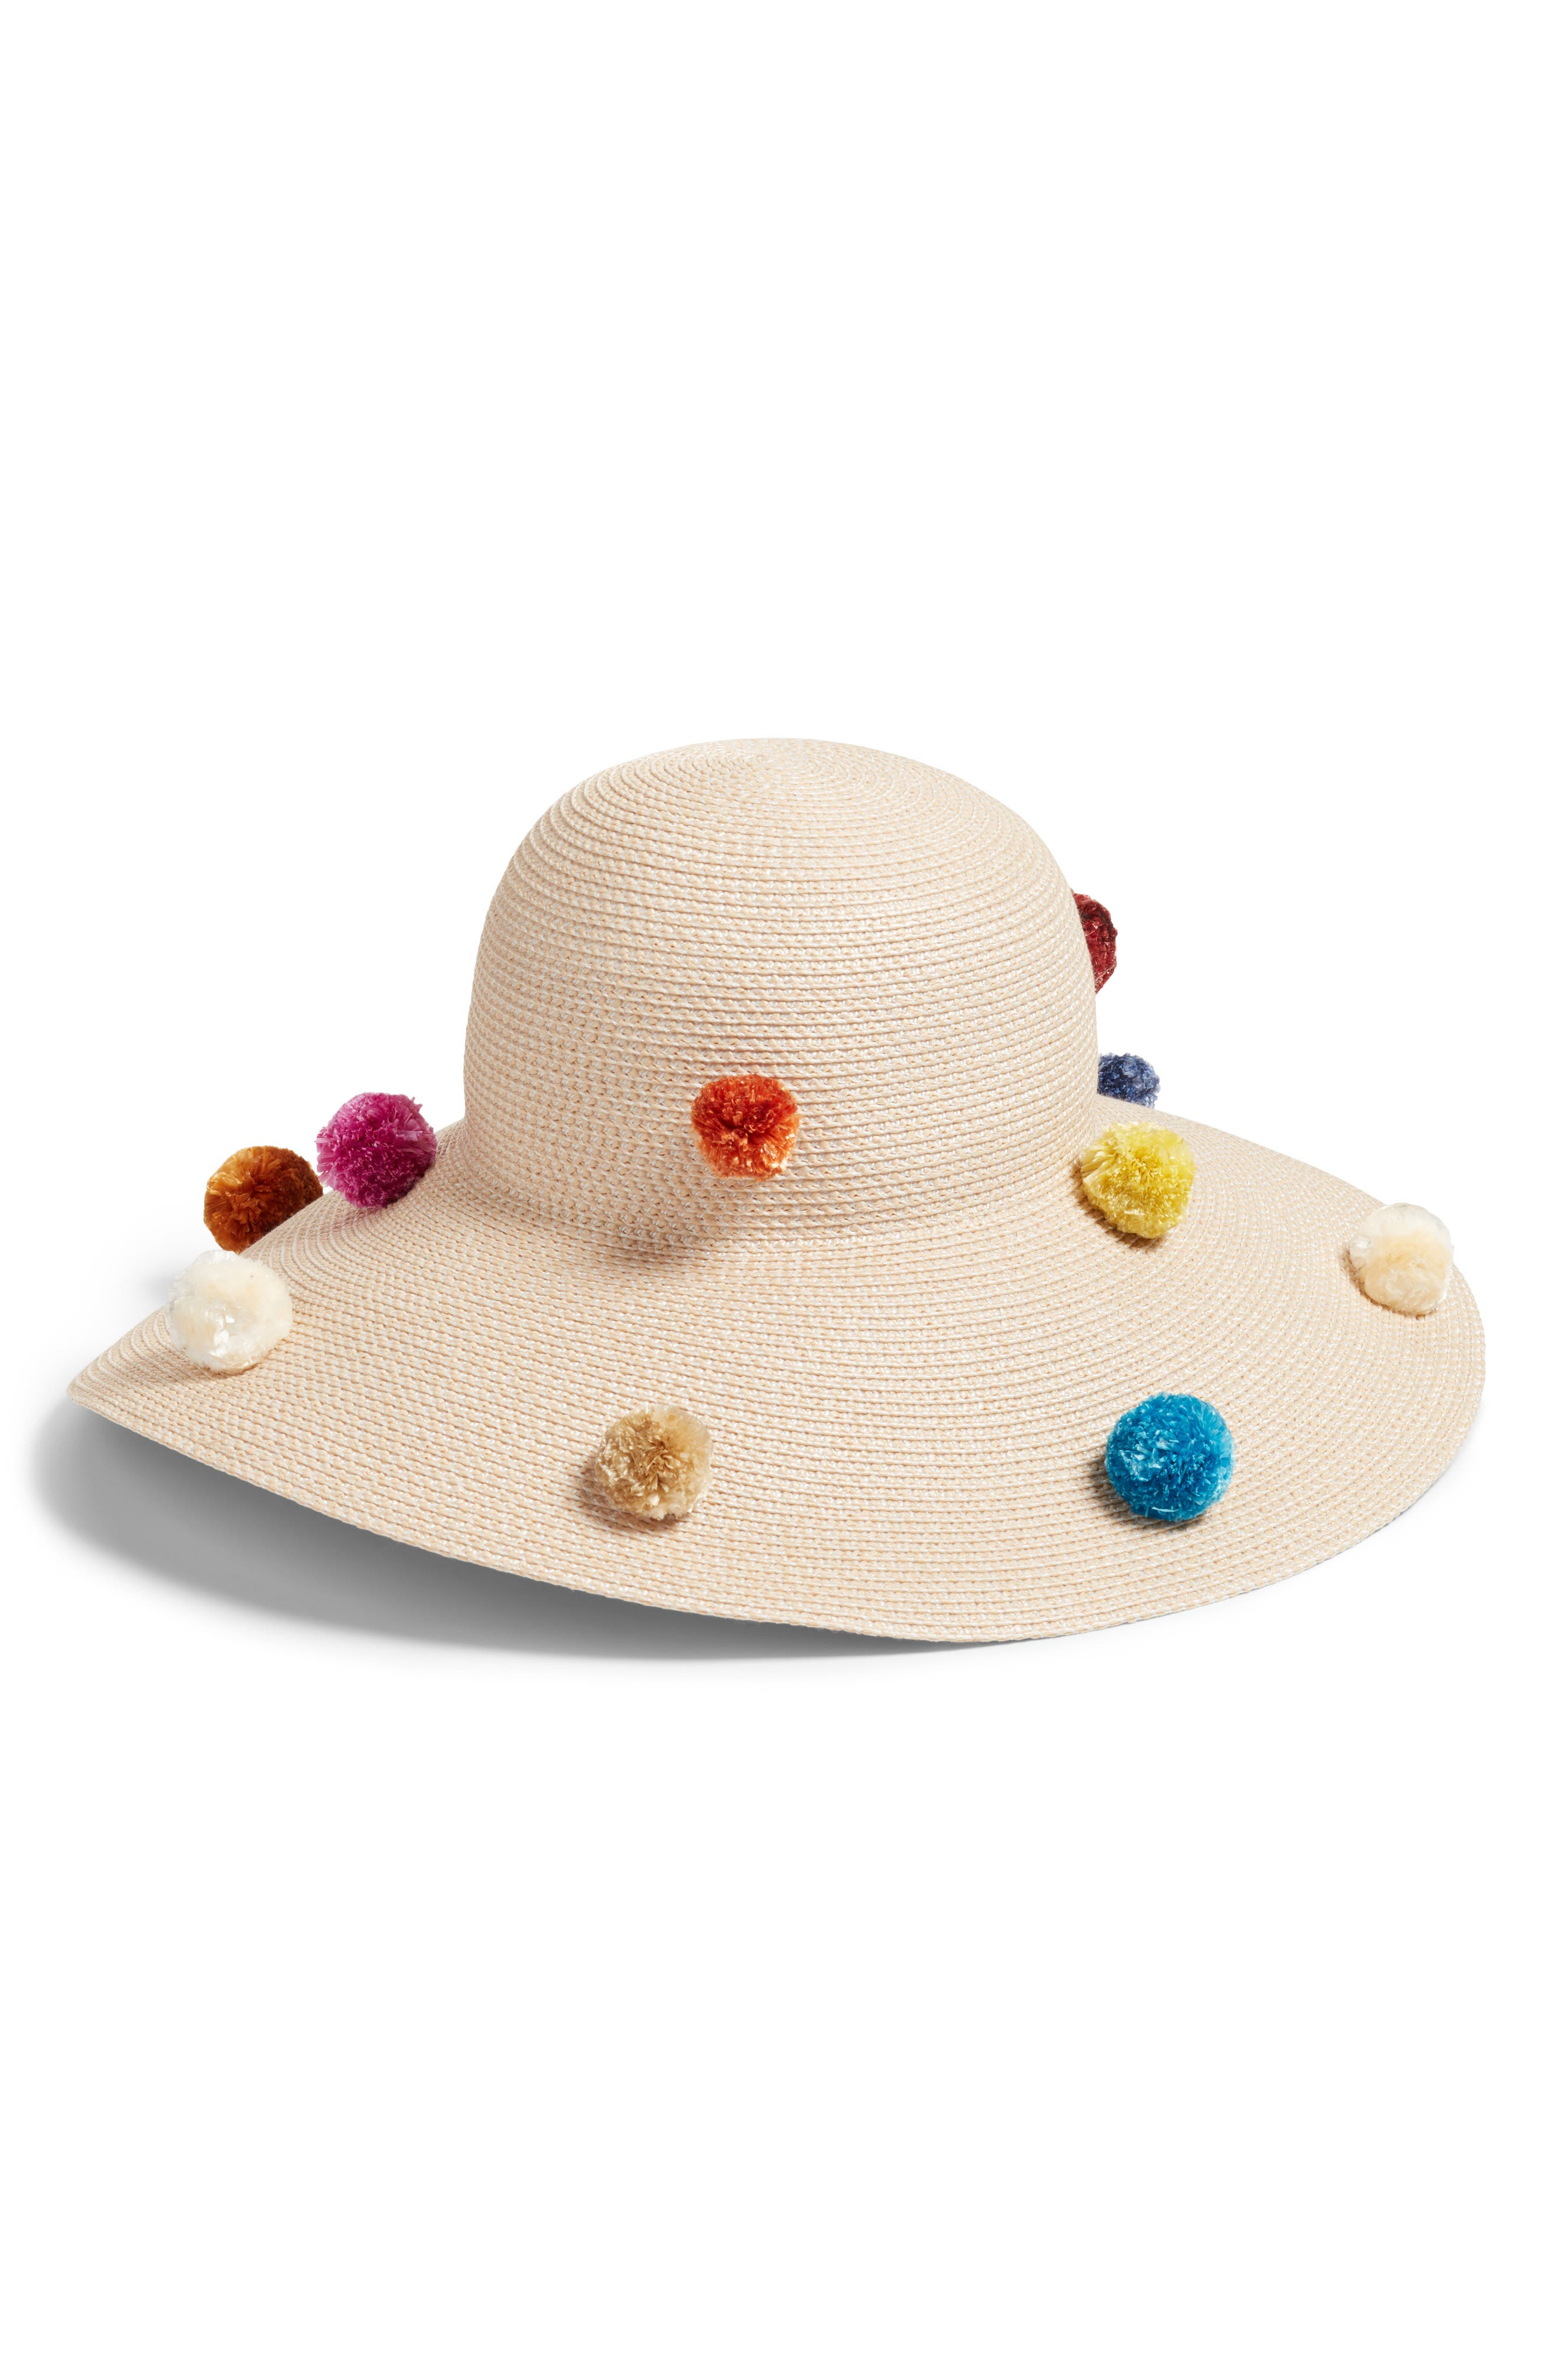 Pompom Bella Squishee<sup>®</sup> Sun Hat,                         Main,                         color,